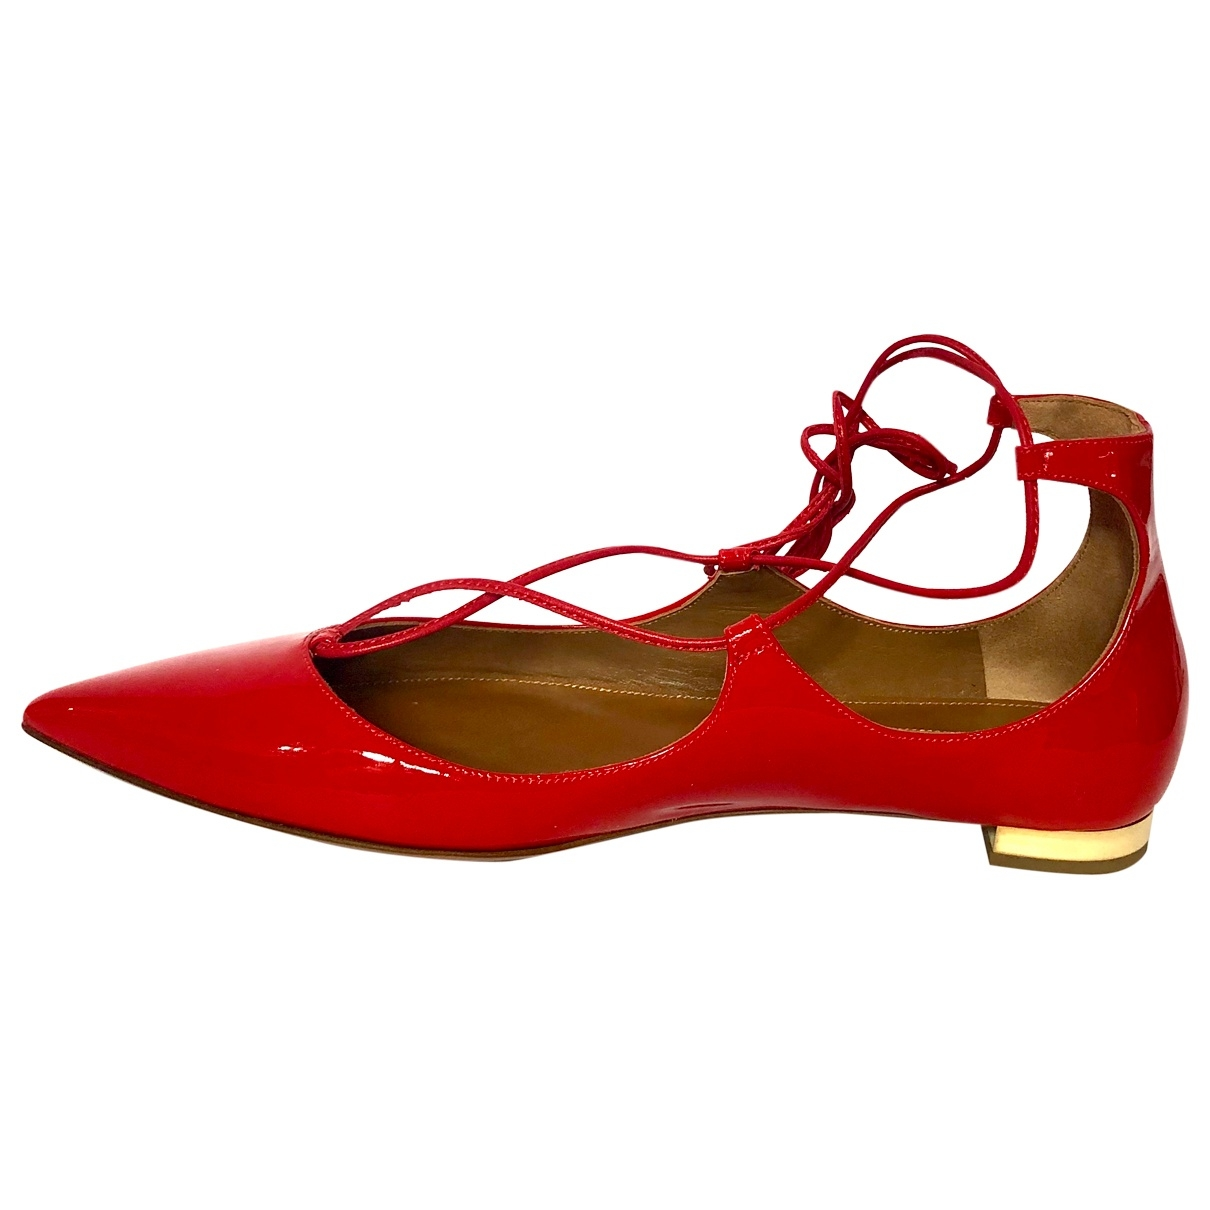 Aquazzura Christy Red Patent leather Ballet flats for Women 39.5 EU